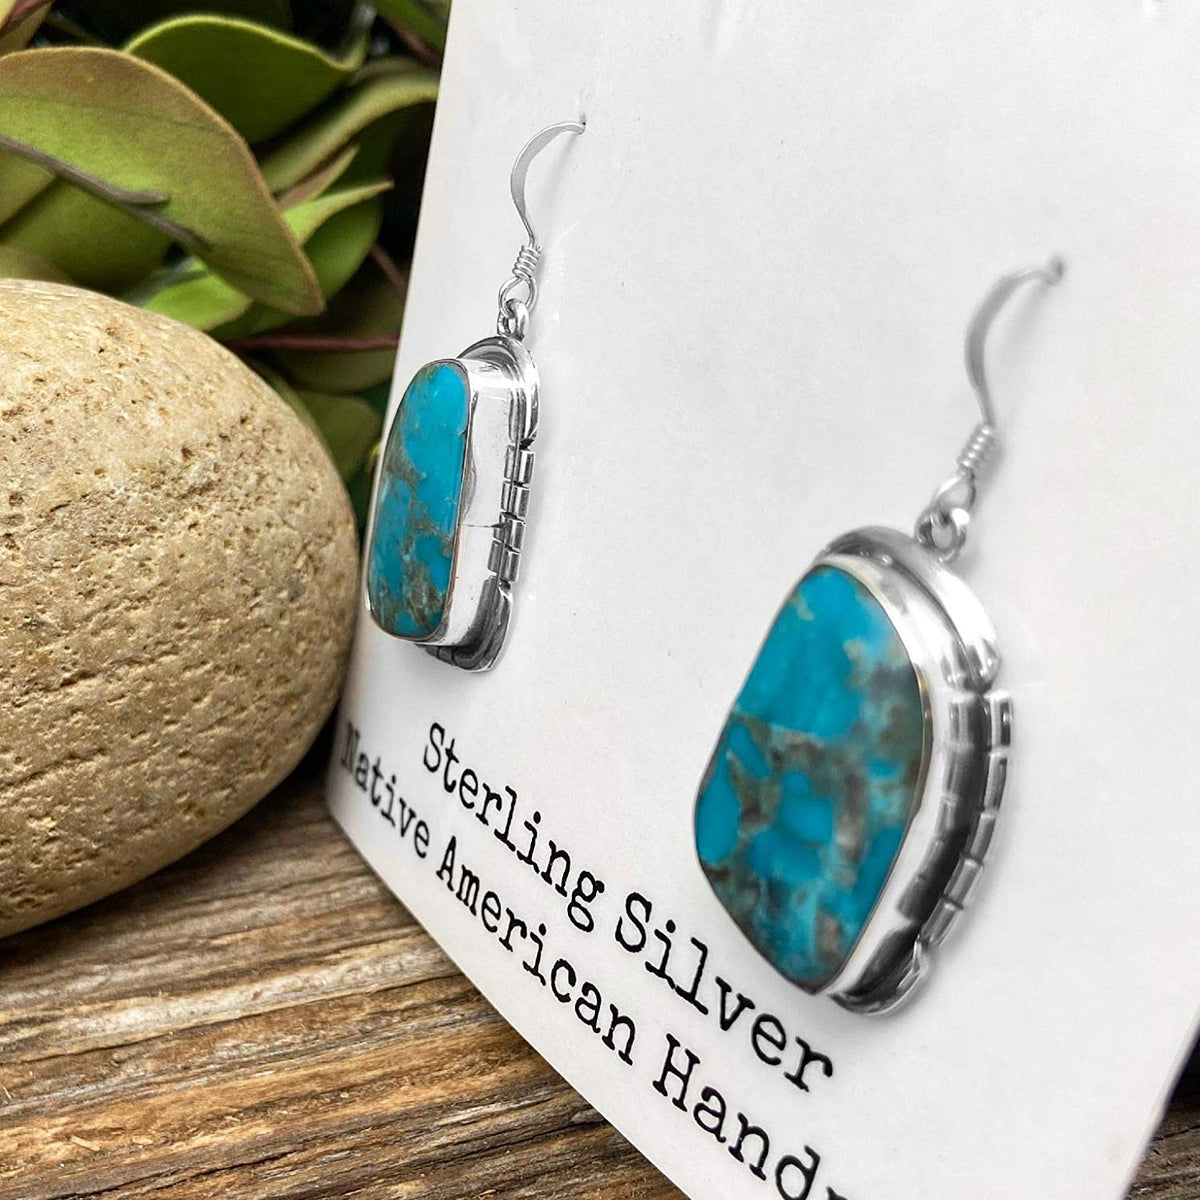 Genuine Kingman Turquoise Earrings, Sterling Silver, Authentic Navajo Native American USA Handmade, Artisan Signed, Nickle Free, French Hook